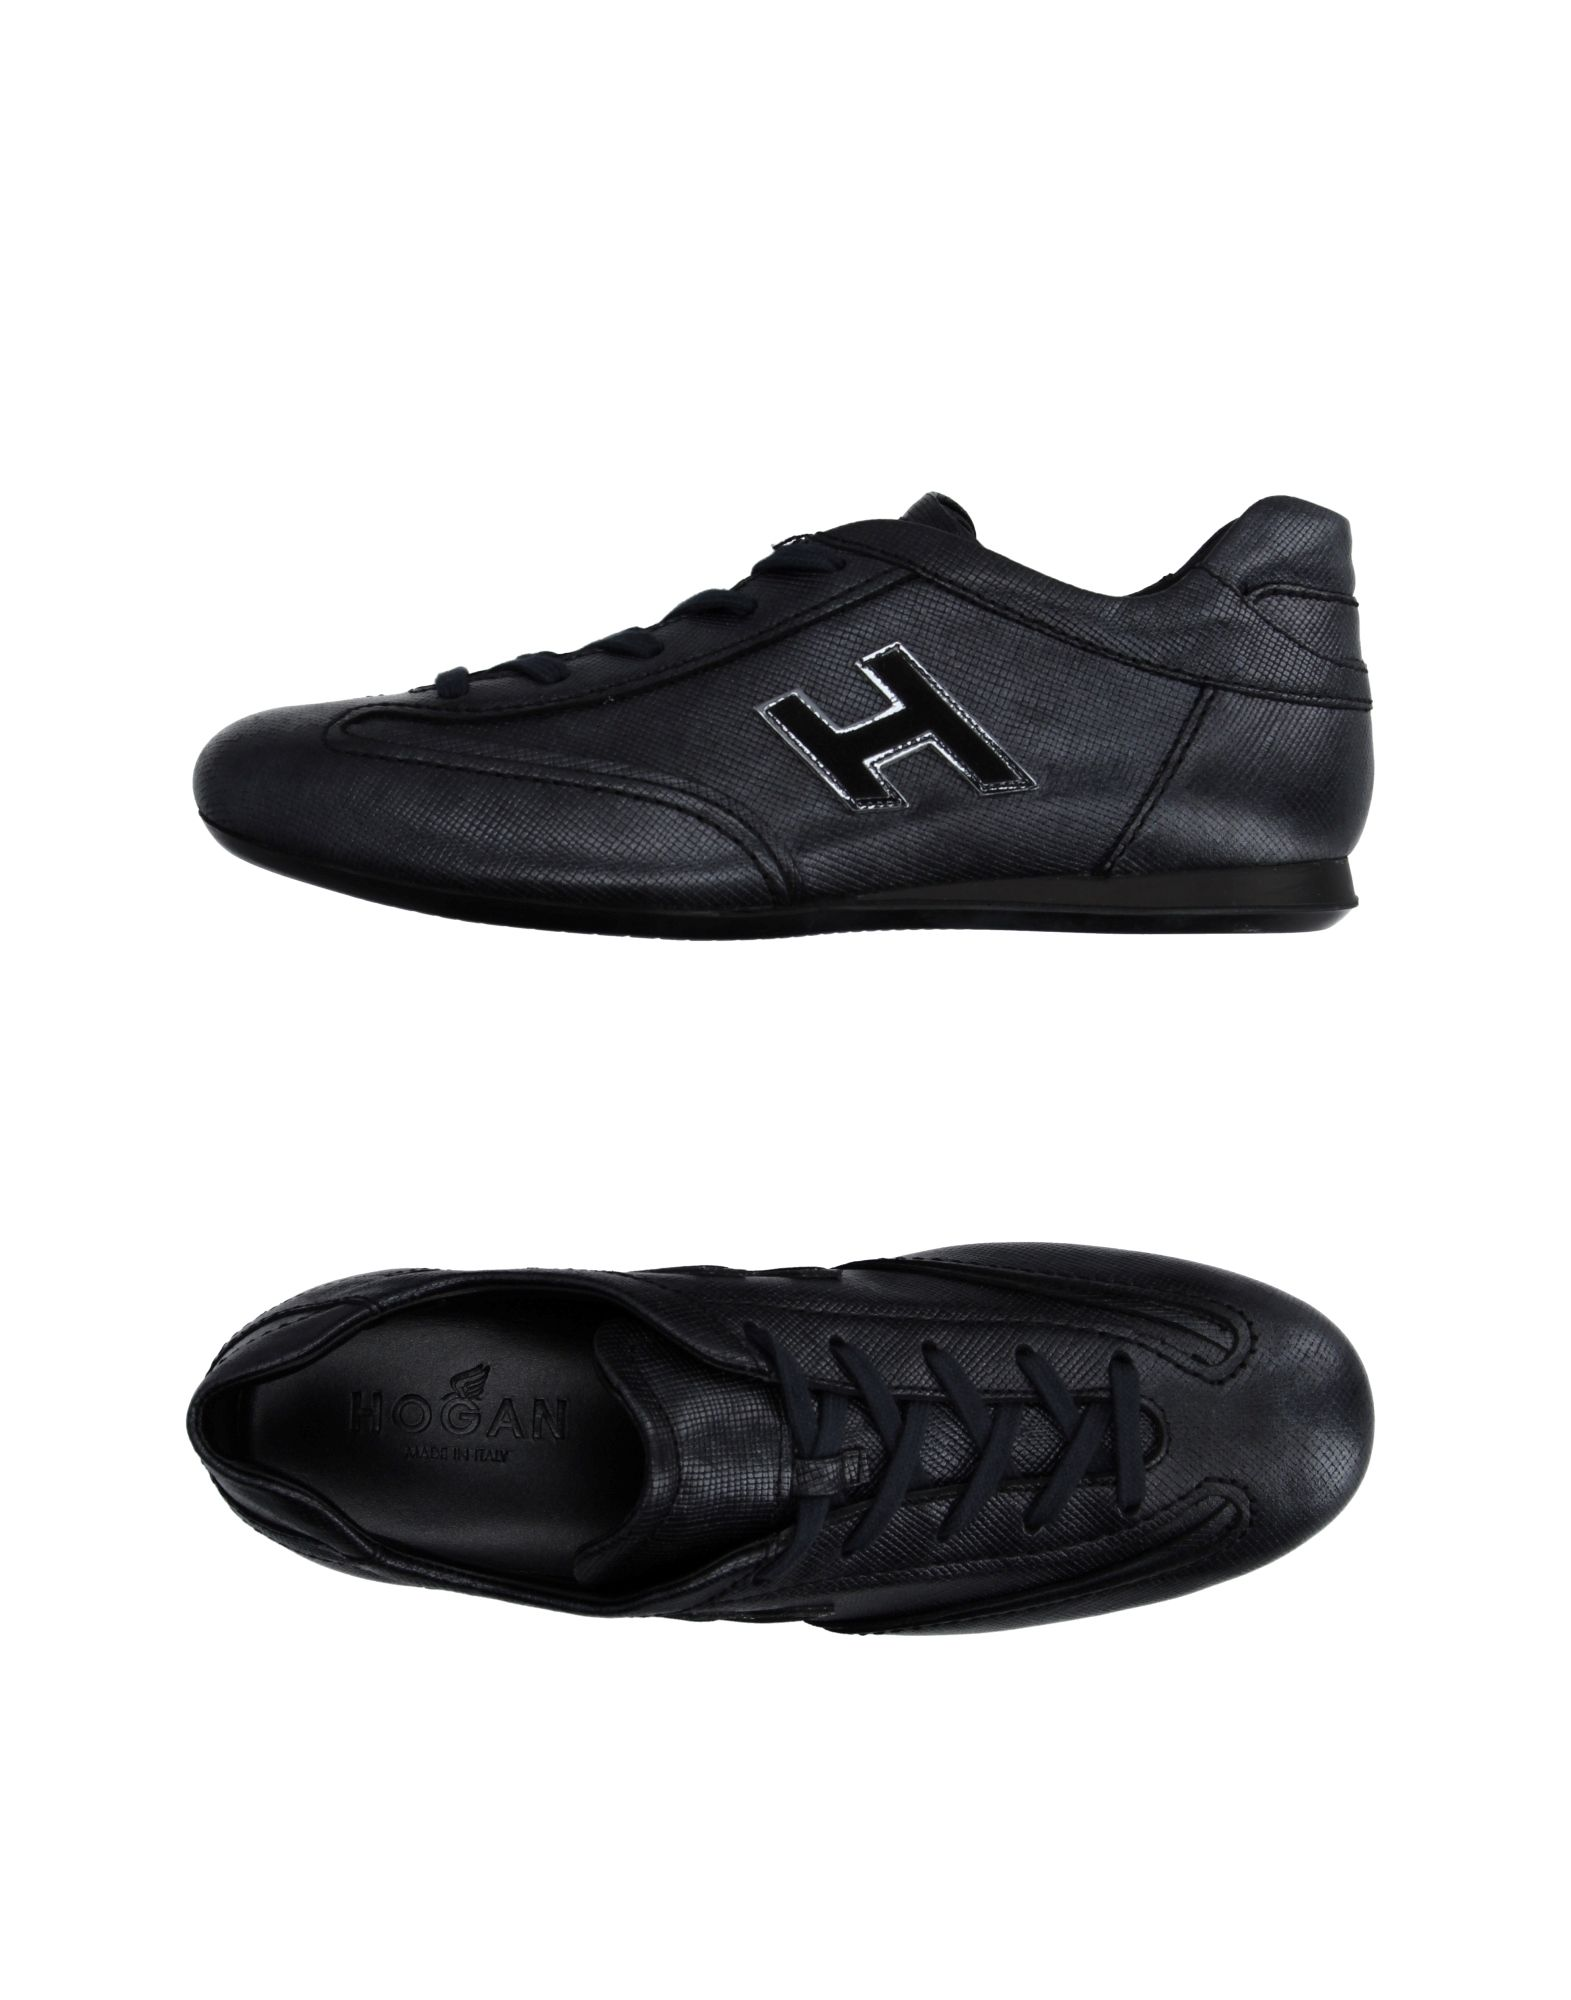 Hogan Sneakers United - Women Hogan Sneakers online on  United Sneakers Kingdom - 11034671IE 837414